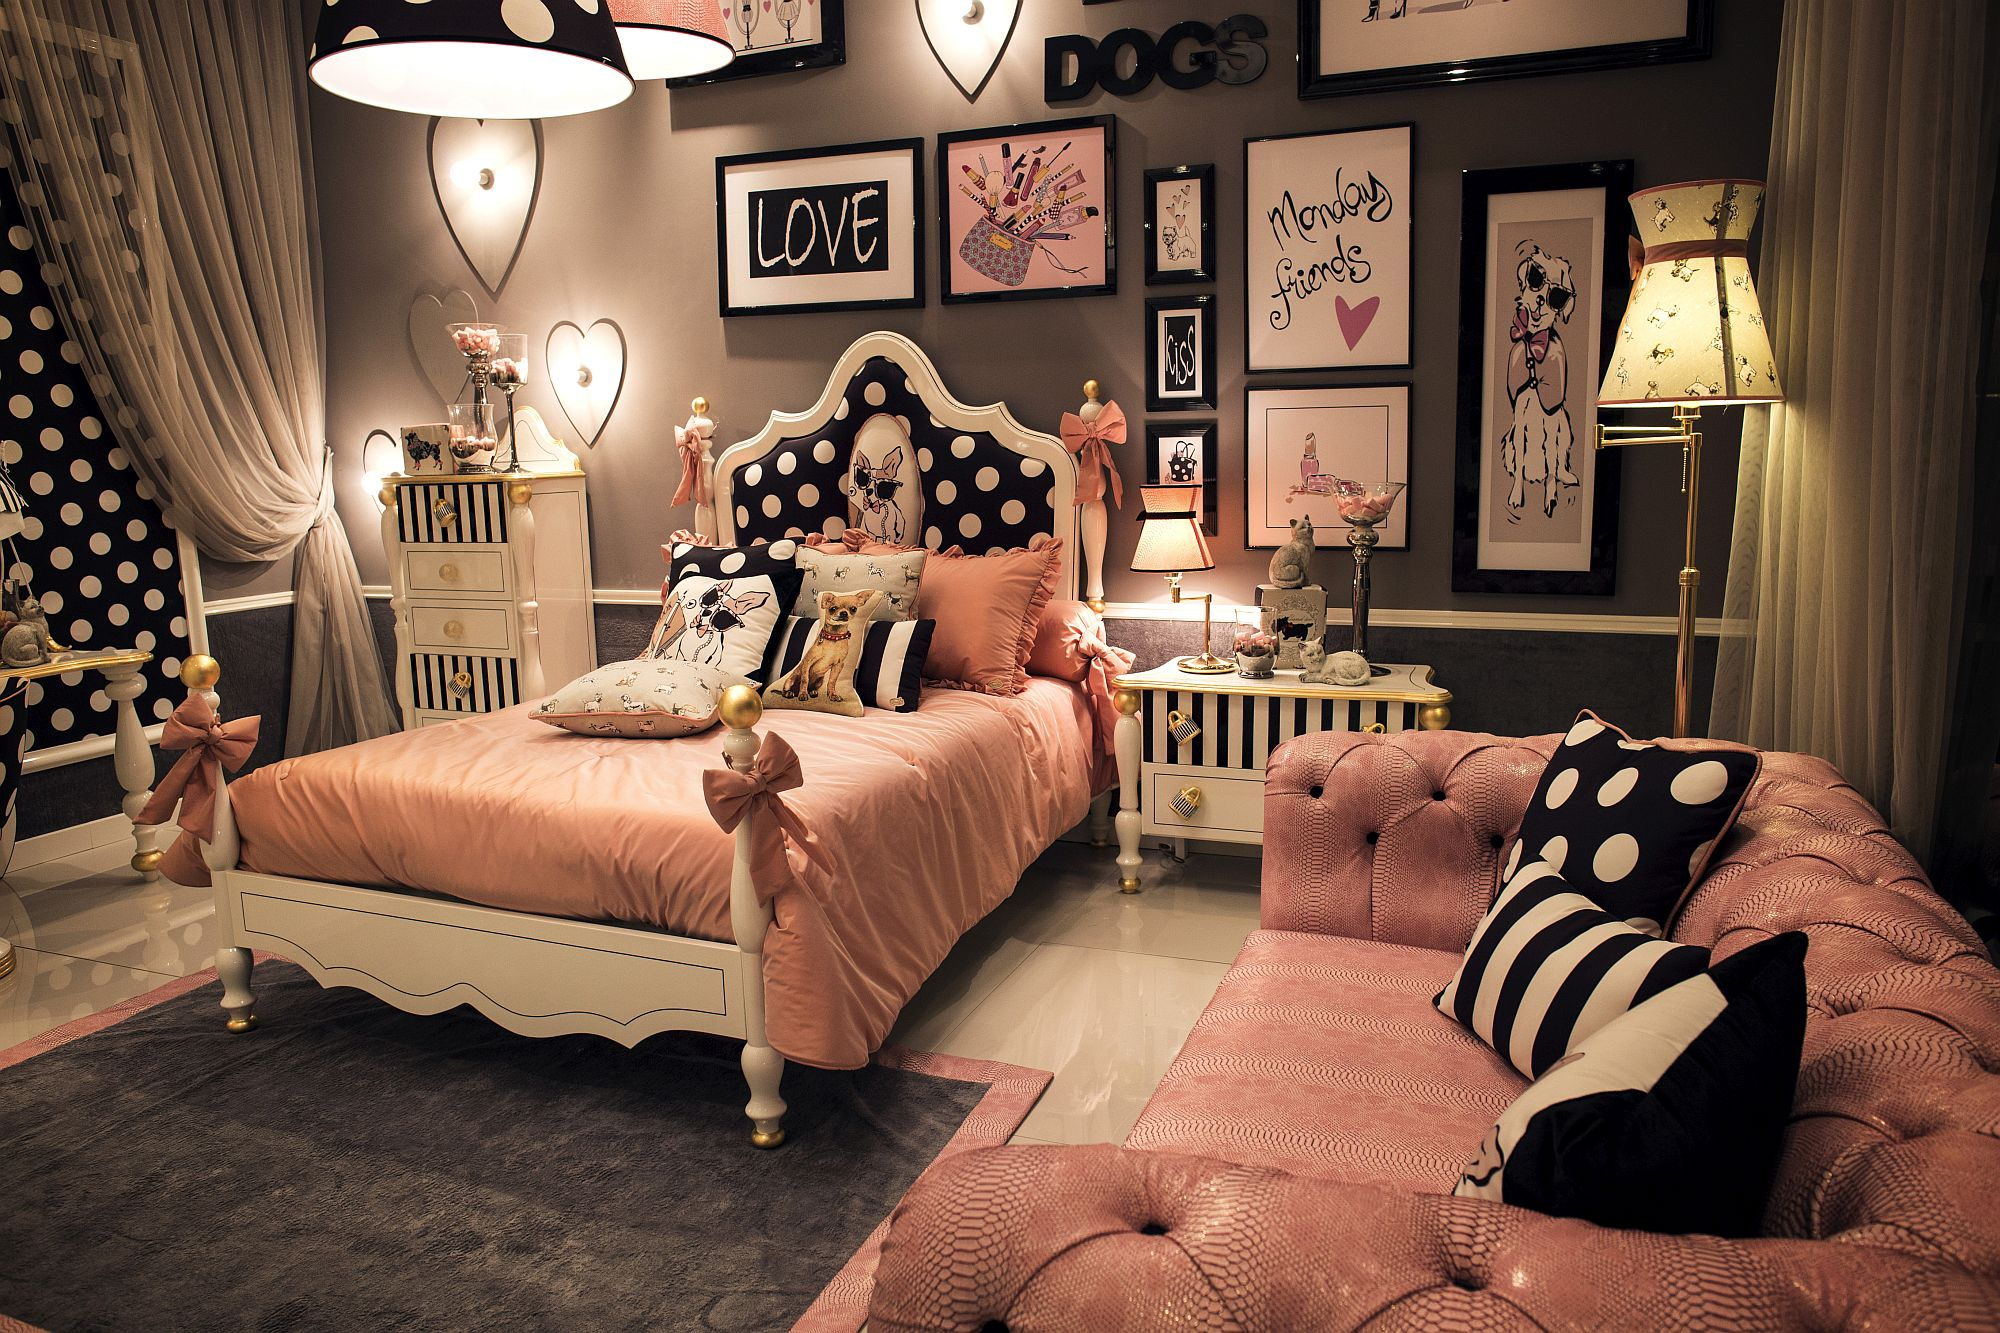 Chic teen bedroom in black and pink with matching lighting fixtures